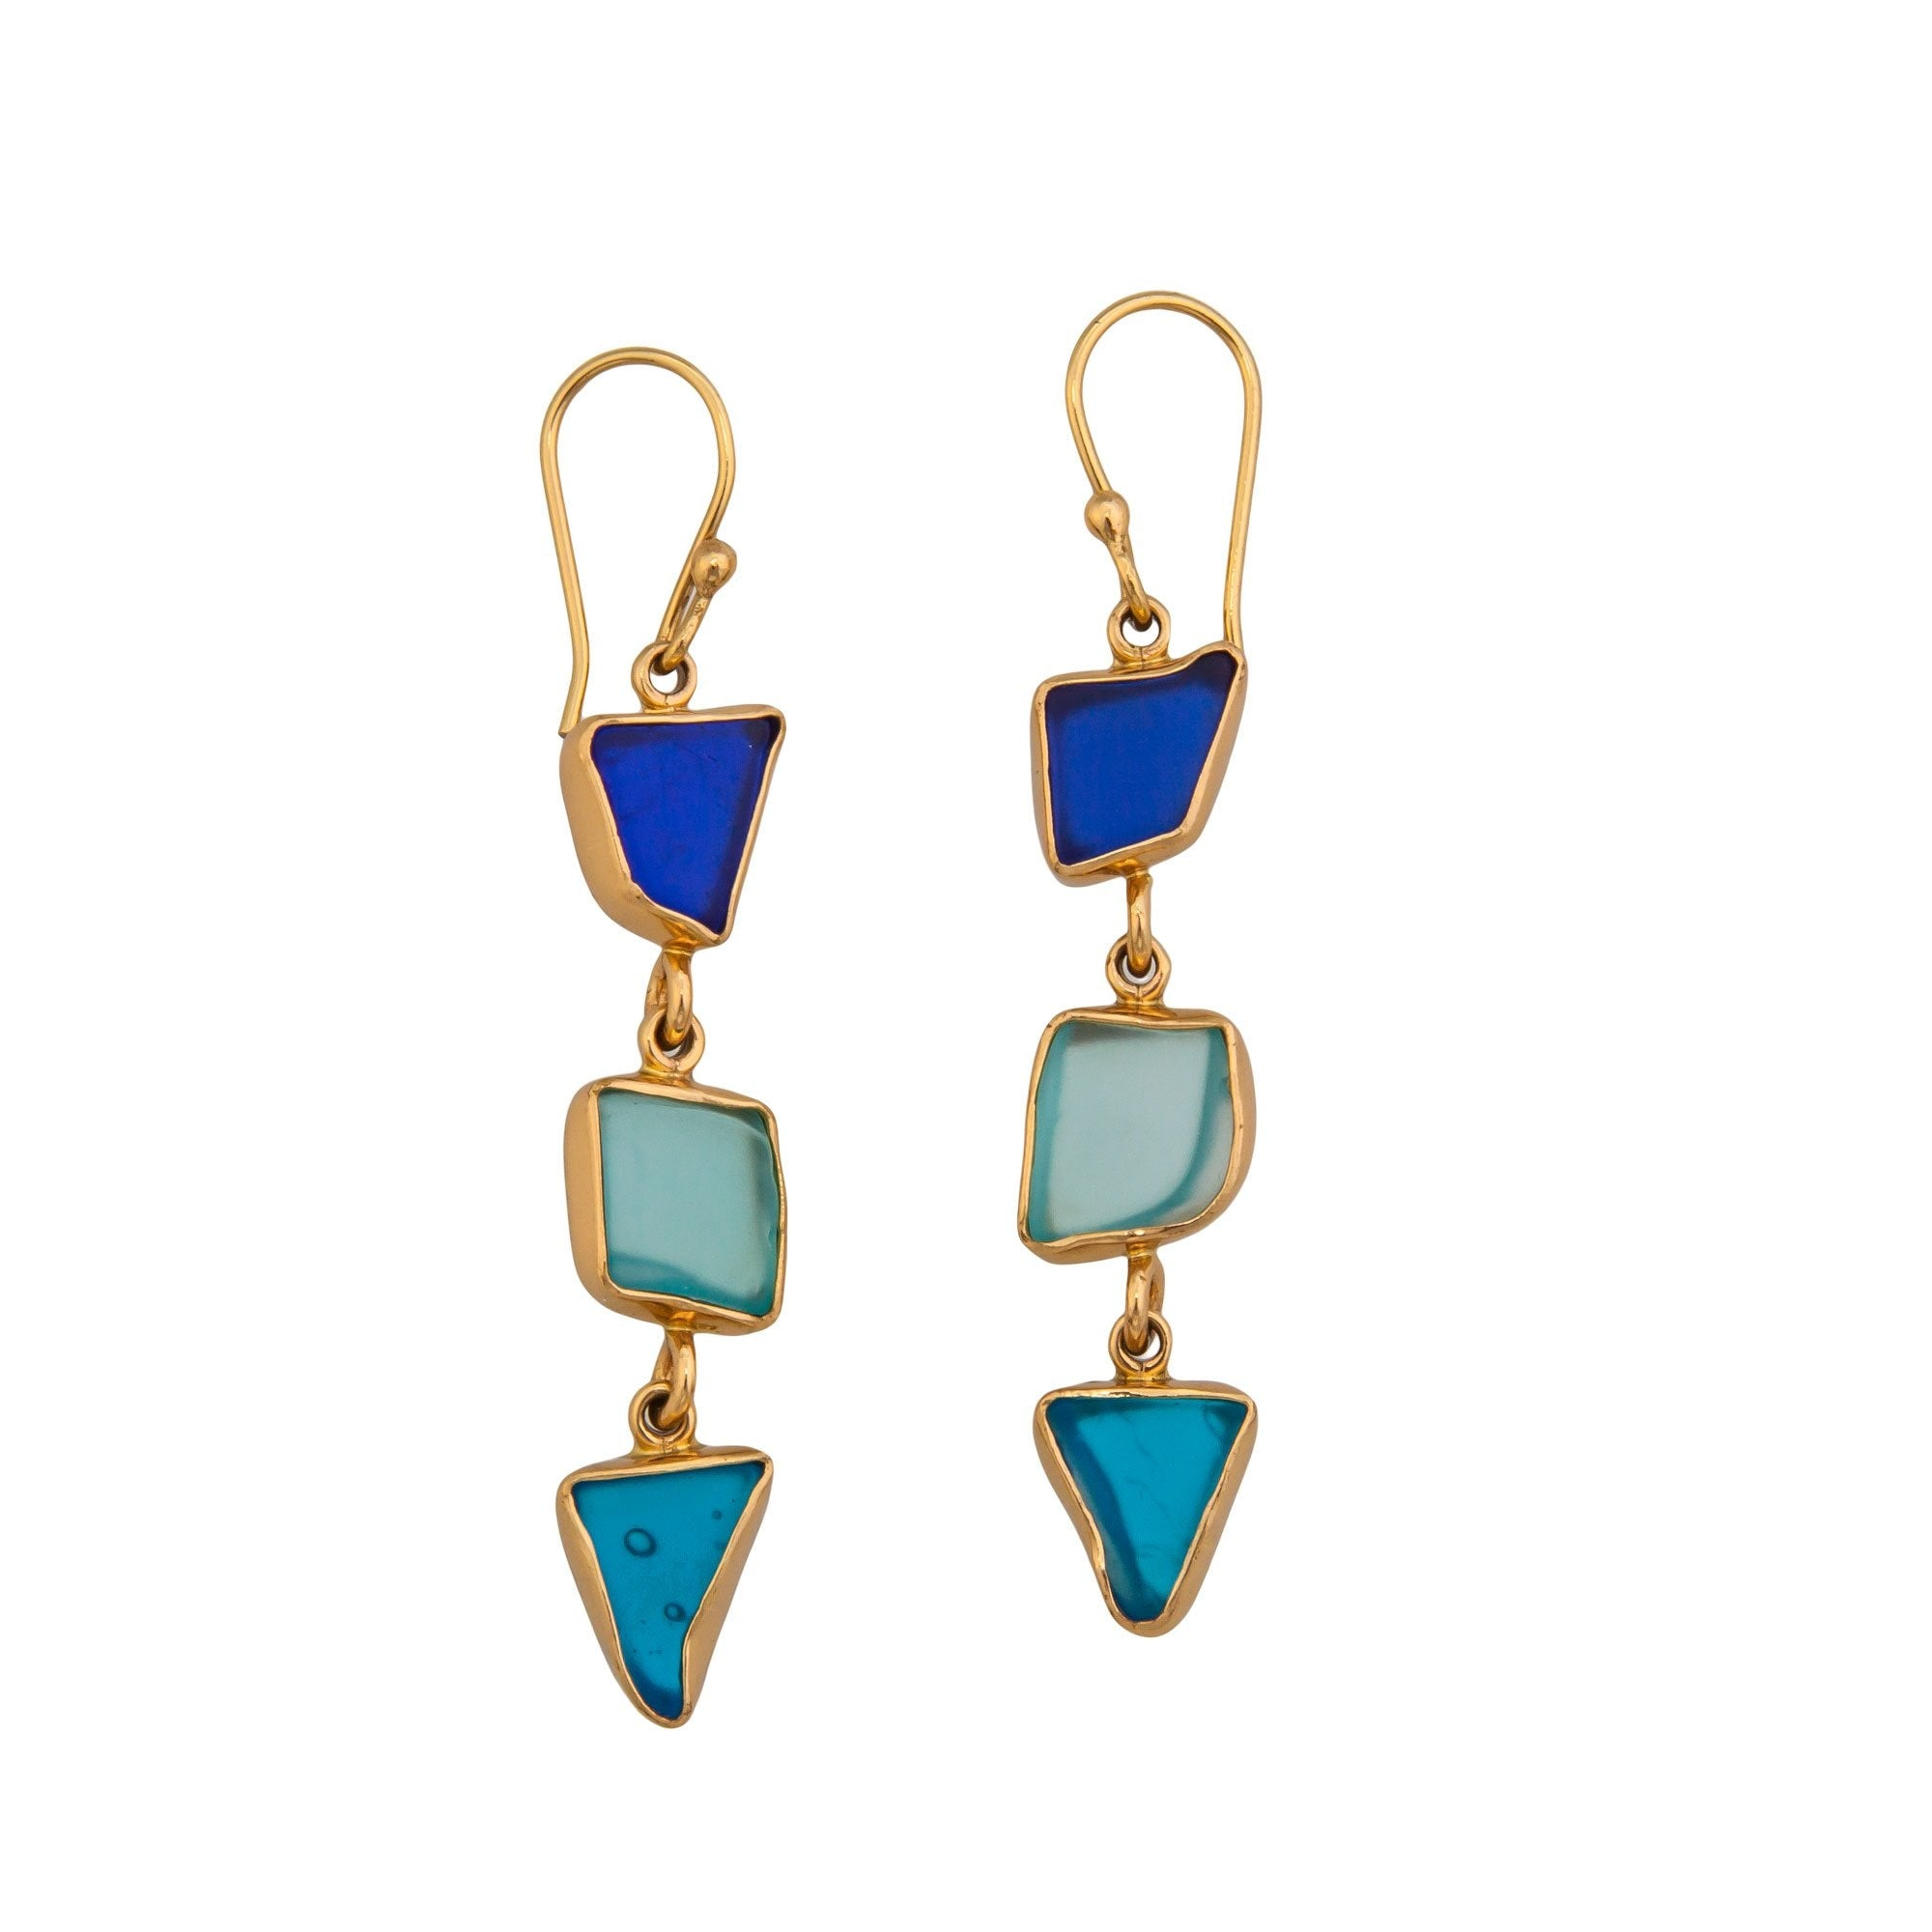 Alchemia Recycled Multi-Color Glass Earrings